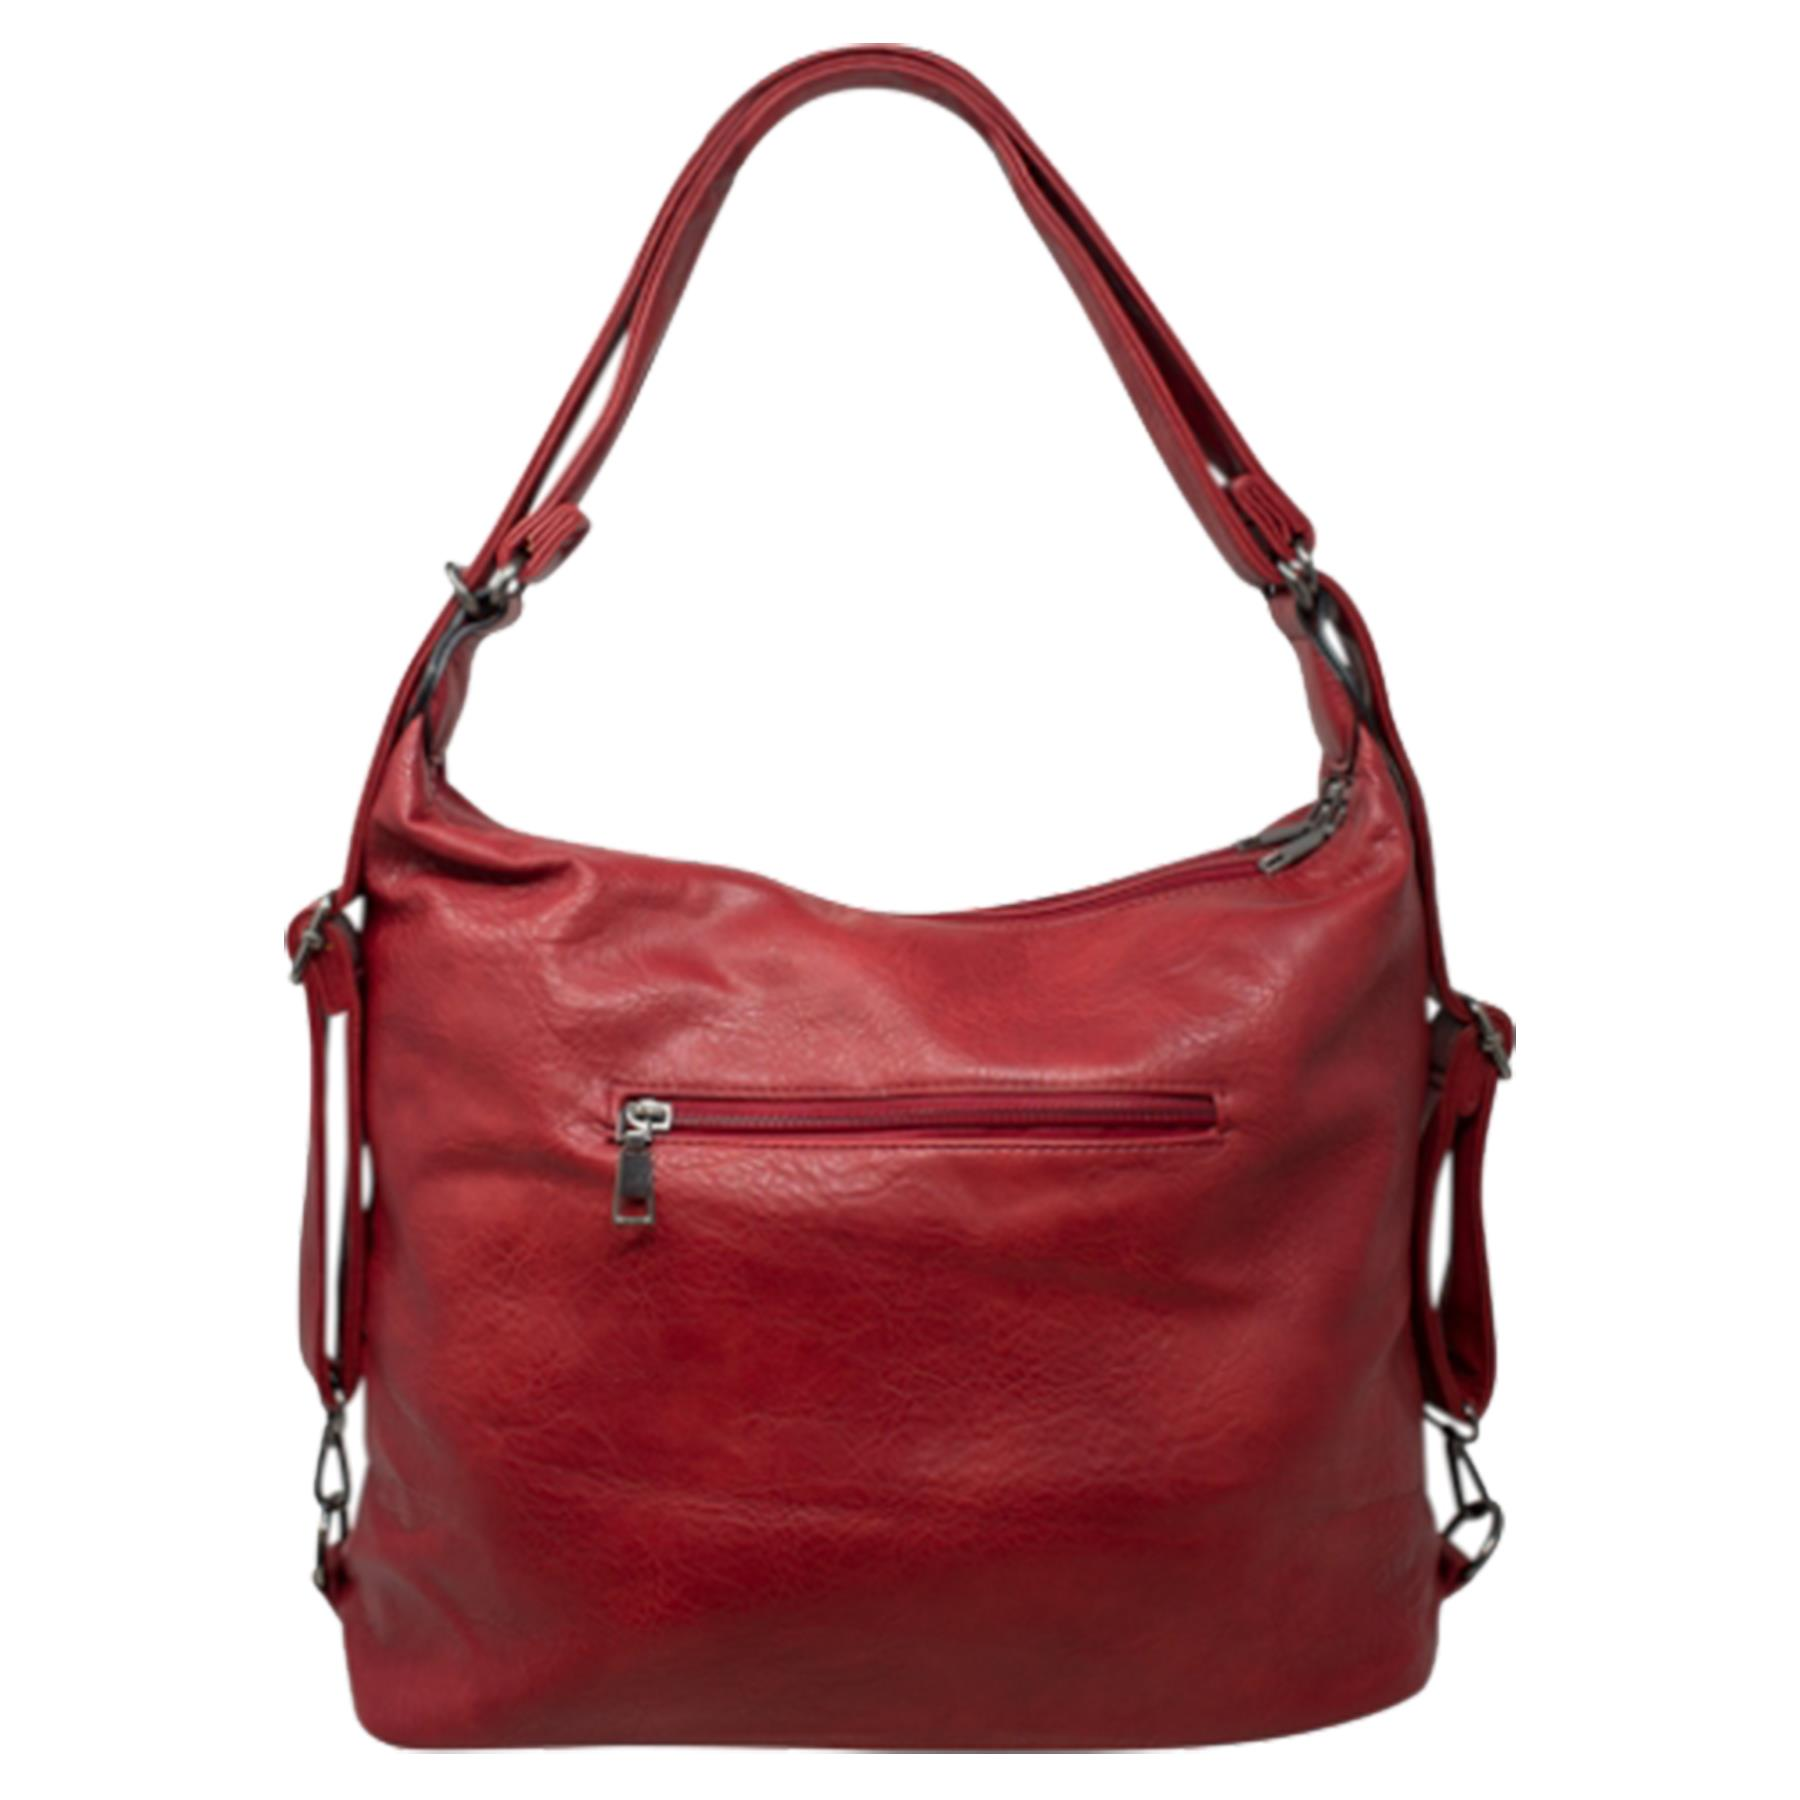 New-Women-s-Men-s-Faux-Leather-Multi-Purpose-Crossbody-Messenger-Bag thumbnail 24